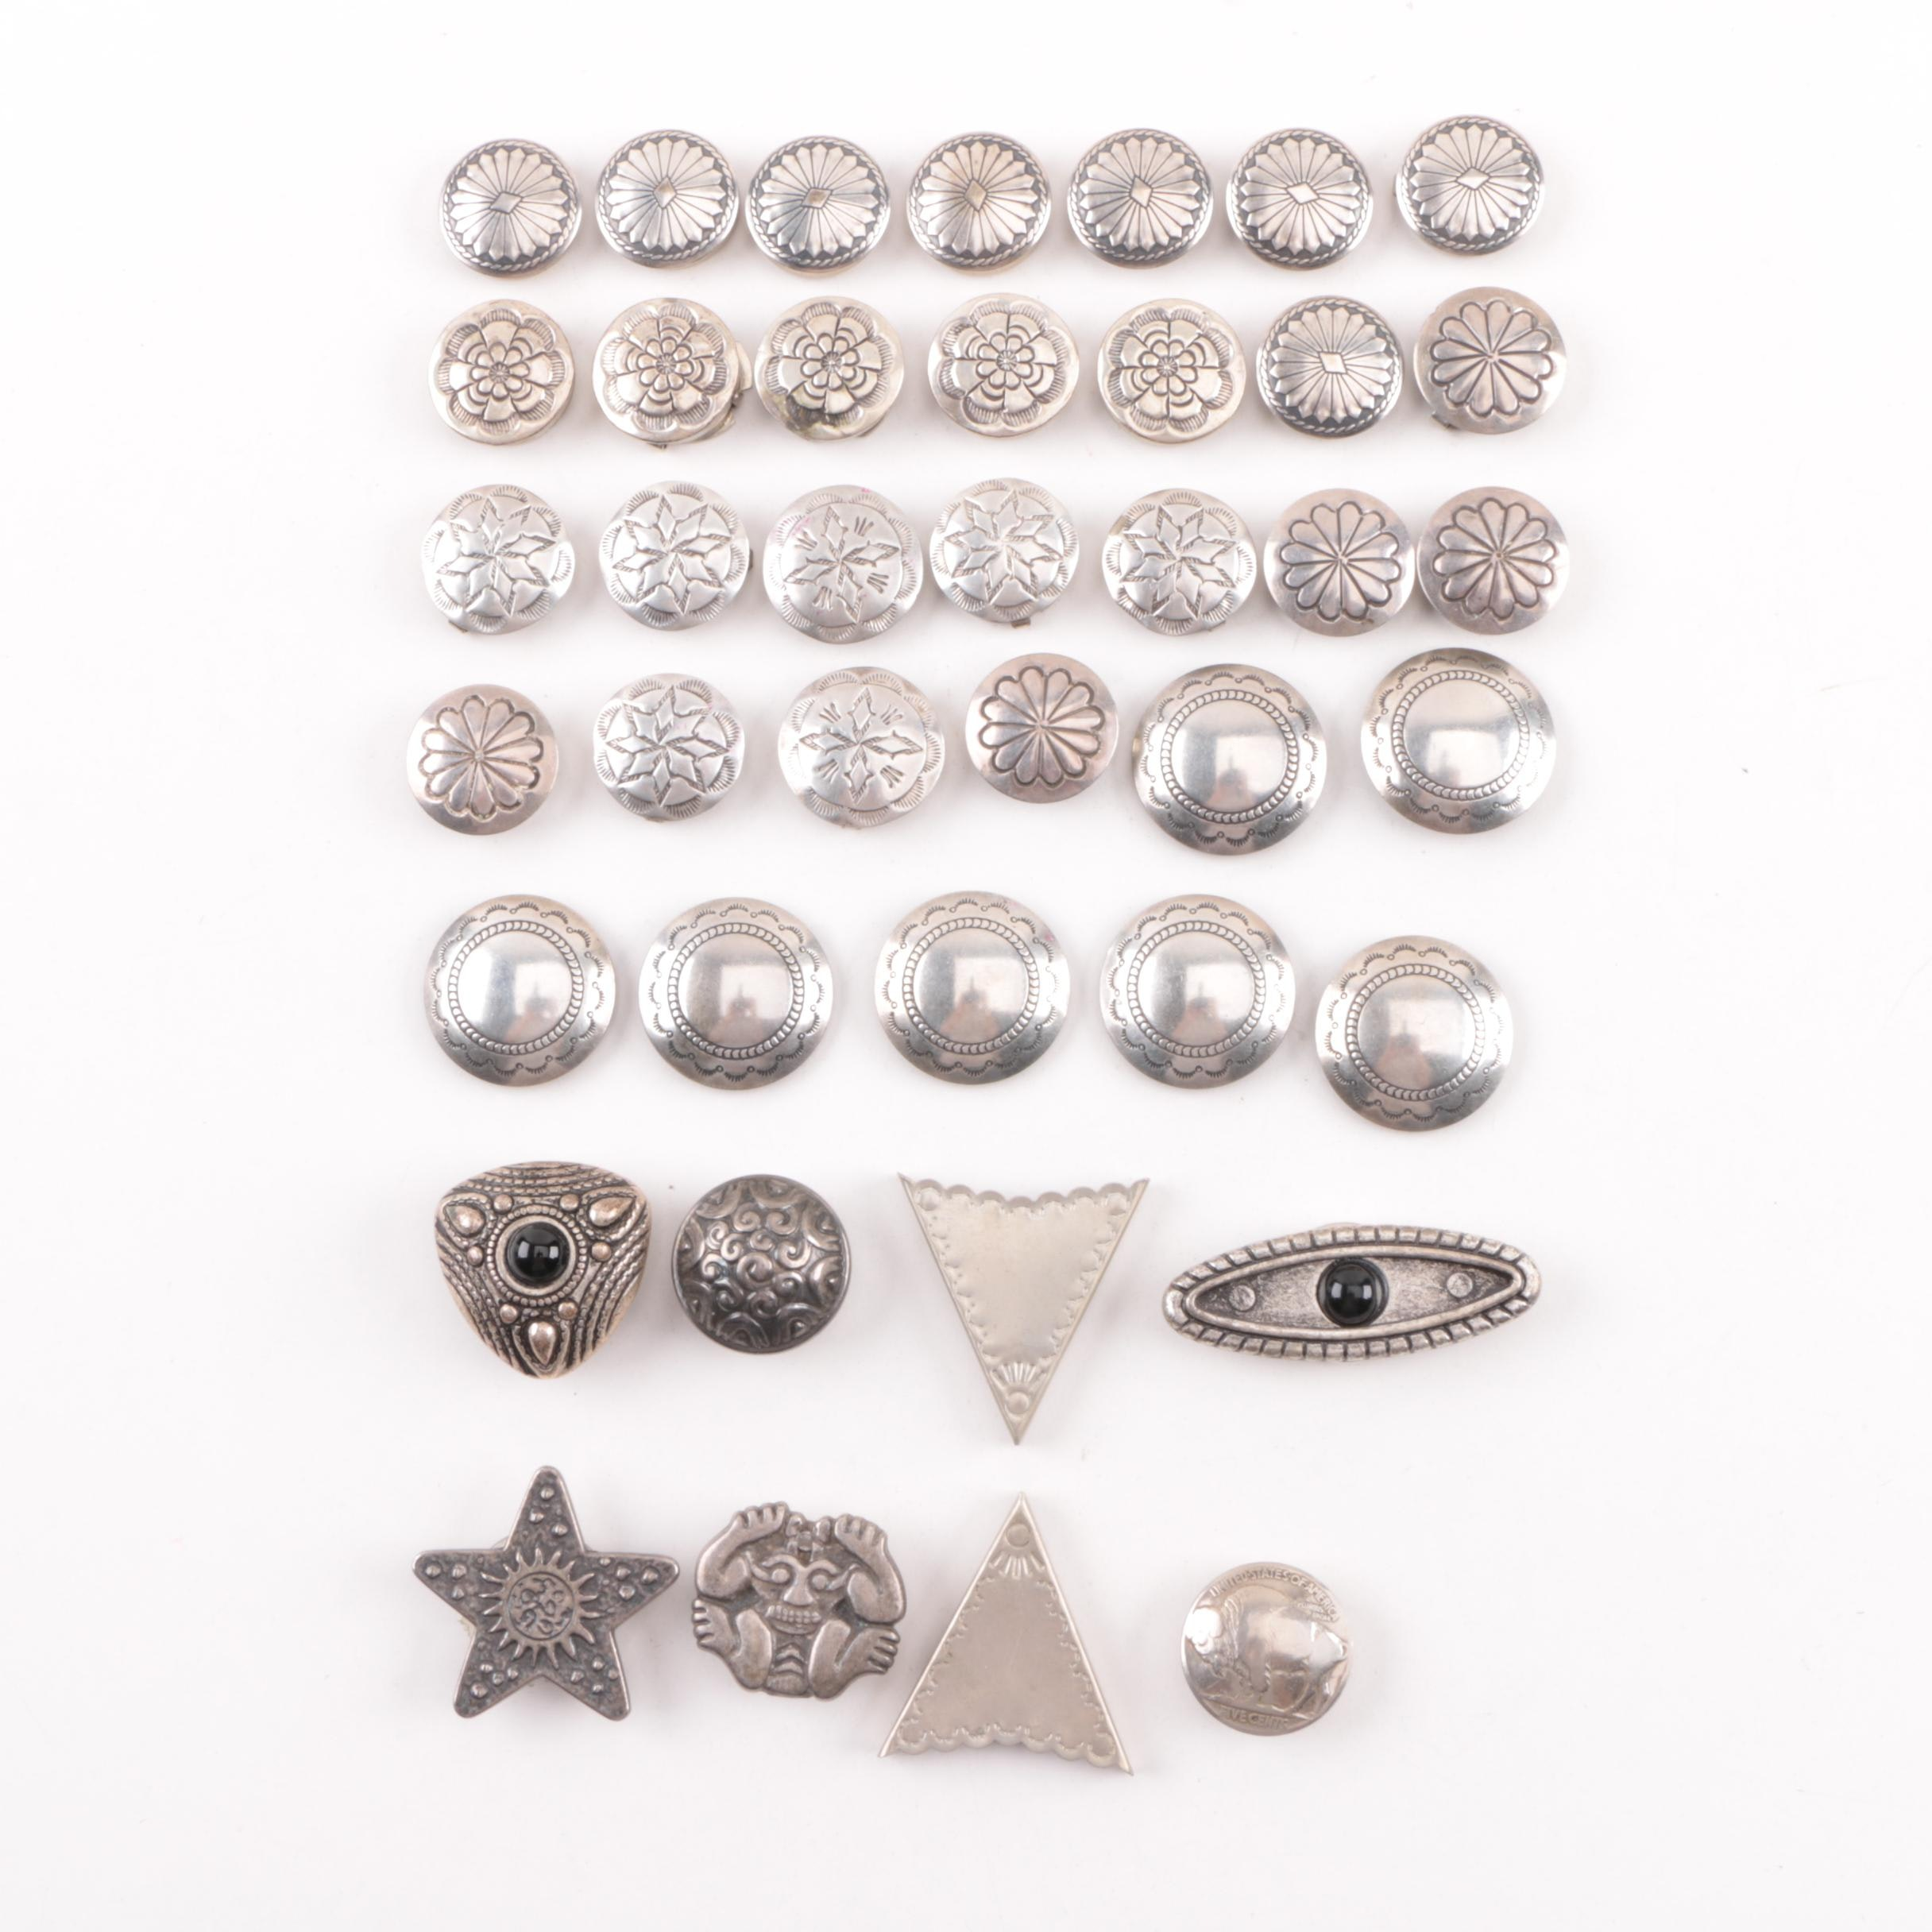 Sterling Silver Buttons Covers and Other